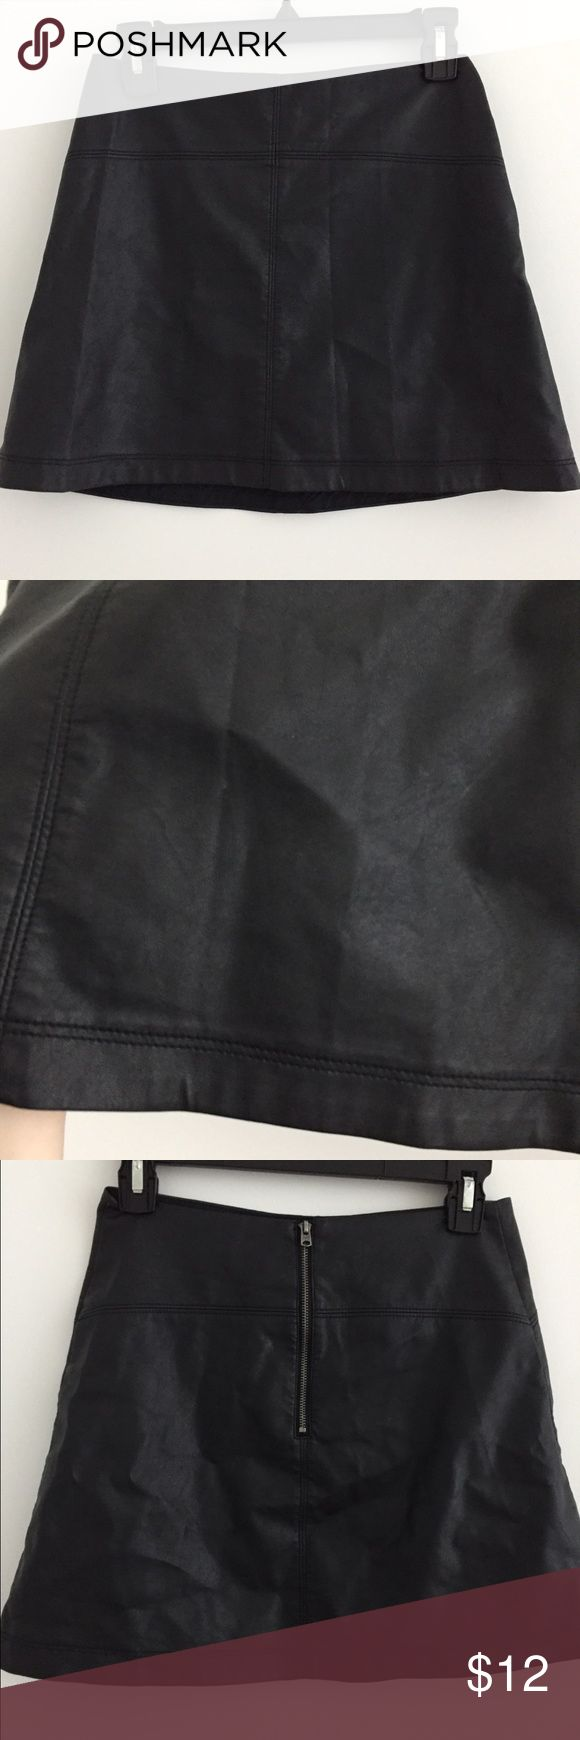 Abercrombie and Fitch pleather skirt Good condition the skirt feels very thin but that's how it's supposed to be. Super cute to edge up any outfit not hot. Pleather does Chris up a bit when you have it folded but after it's out a while it uncreases Abercrombie & Fitch Skirts Mini